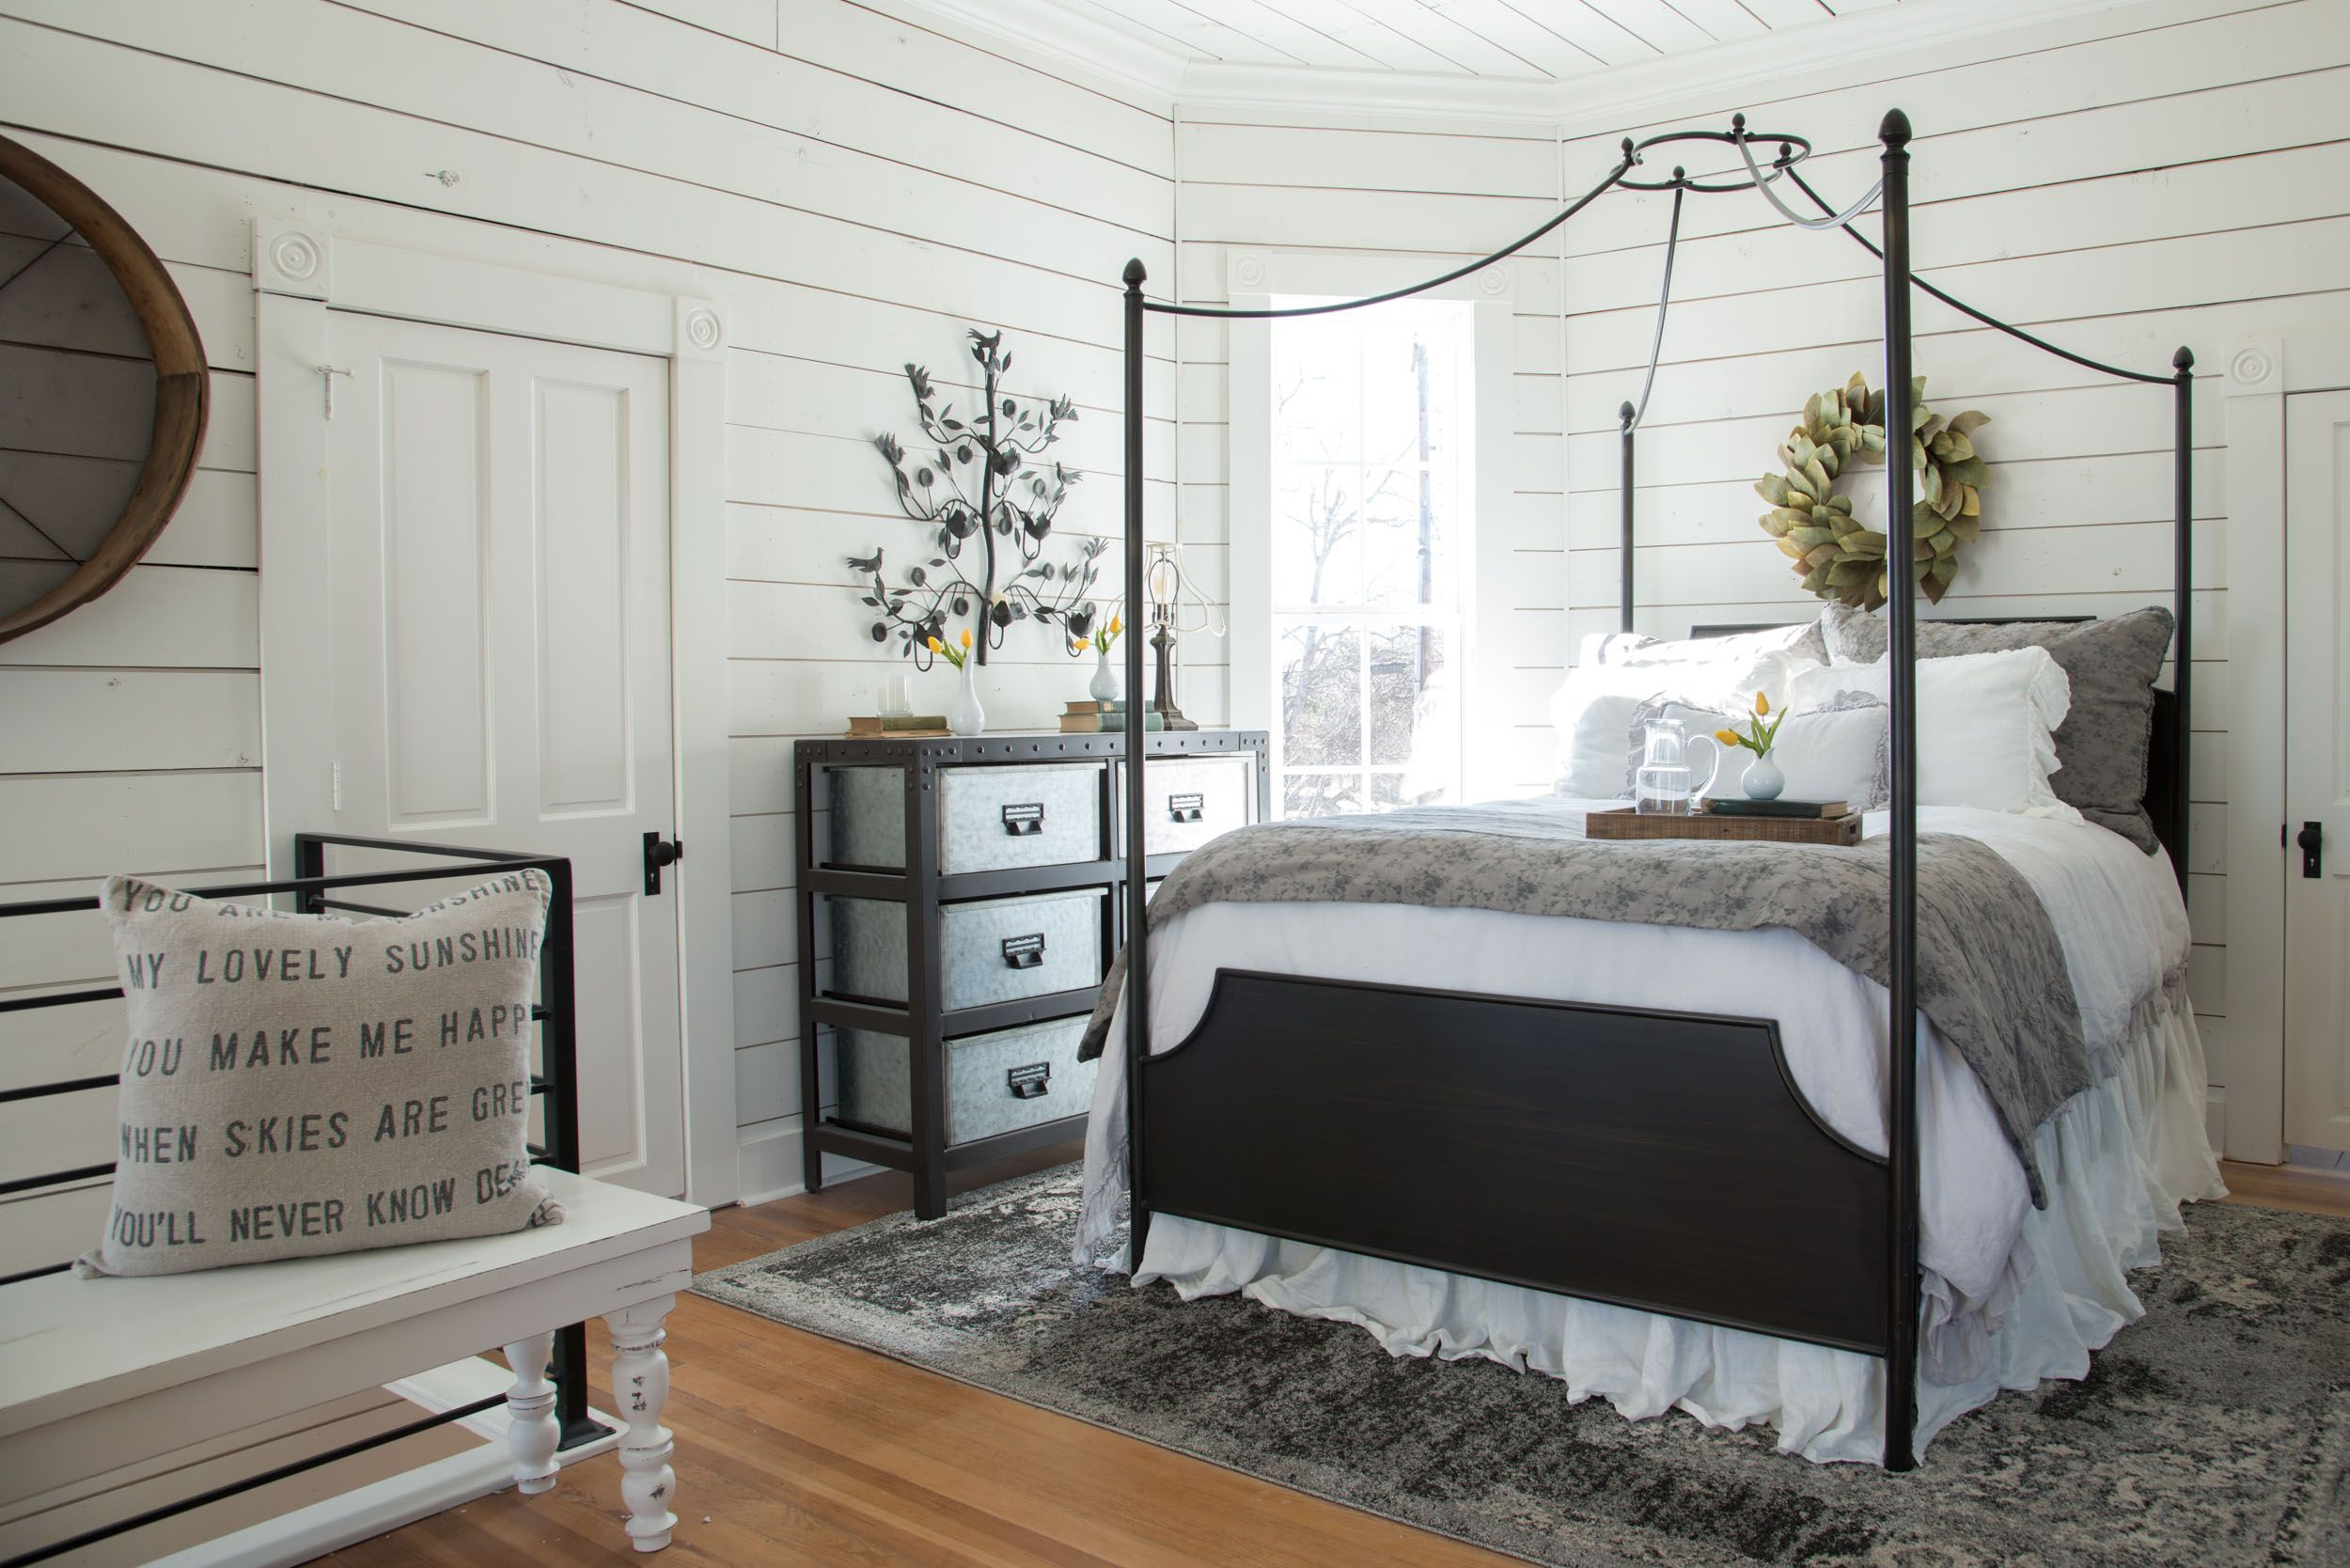 Great Image Result For Magnolia Bed And Breakfast Bedroom With Shiplap